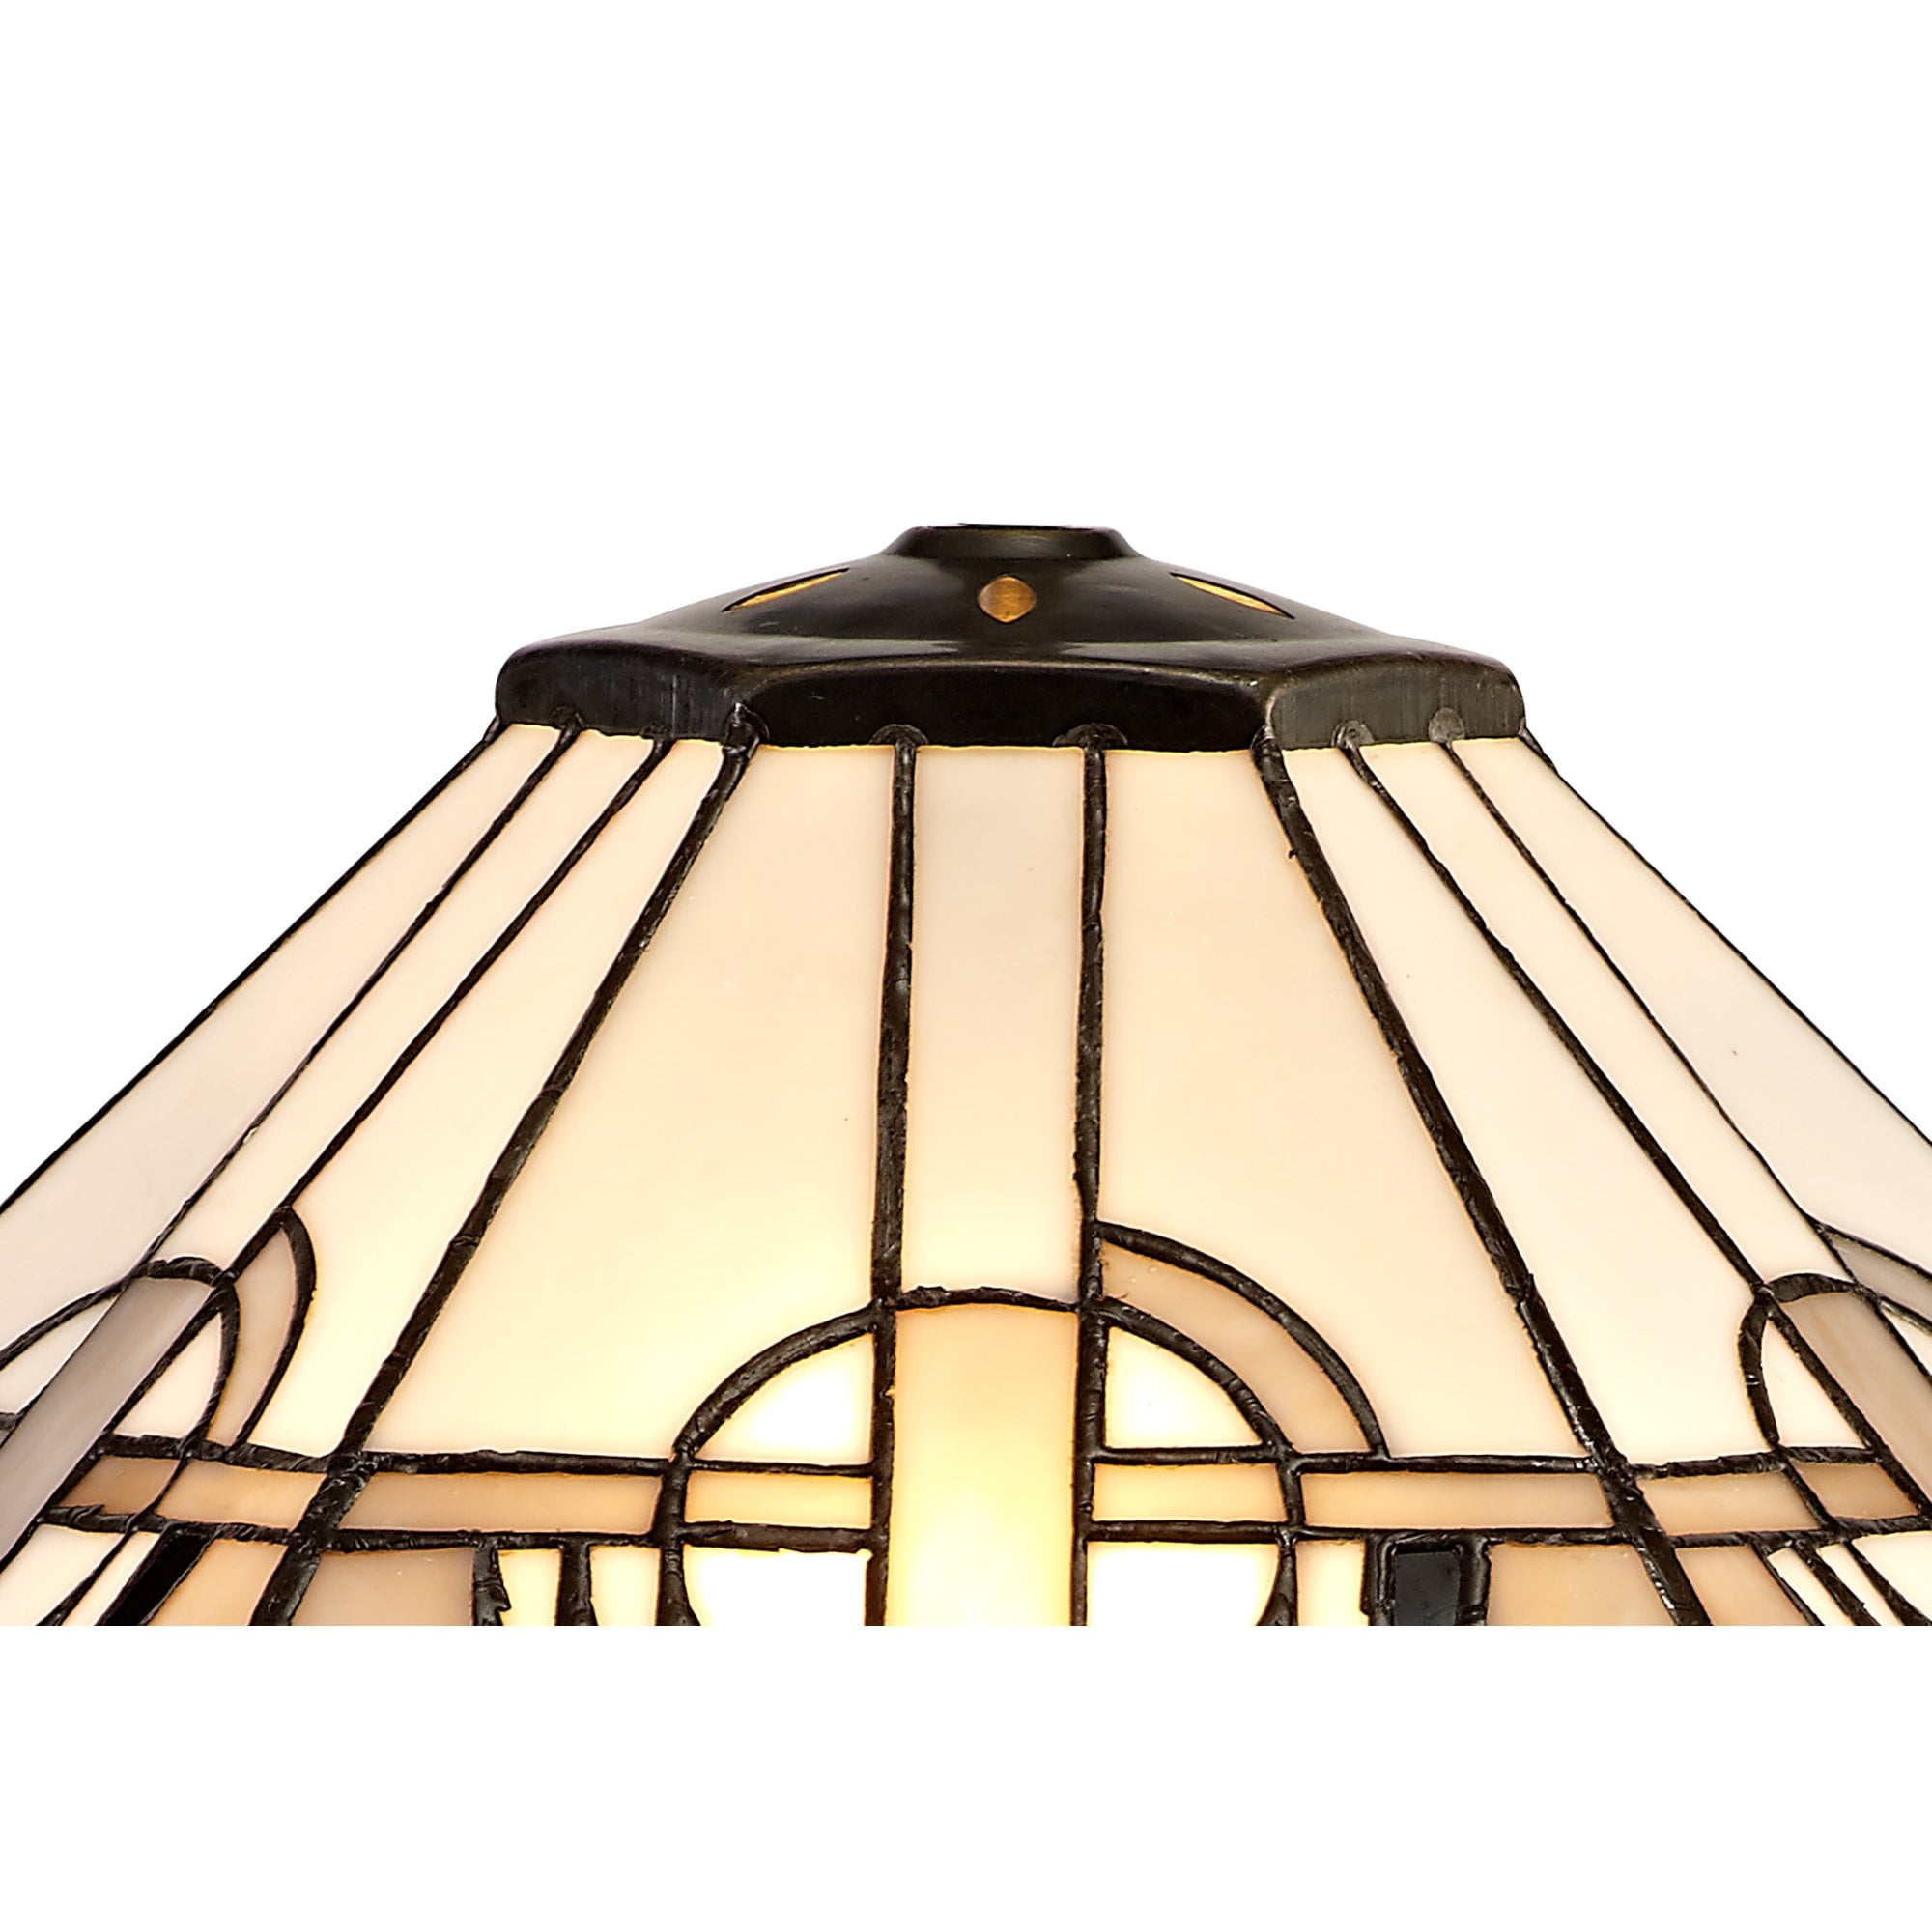 Lg72669 Azure Tiffany 40cm Shade Only Suitable For Pendant Ceiling Table Lamp White Grey Black Clear Crystal